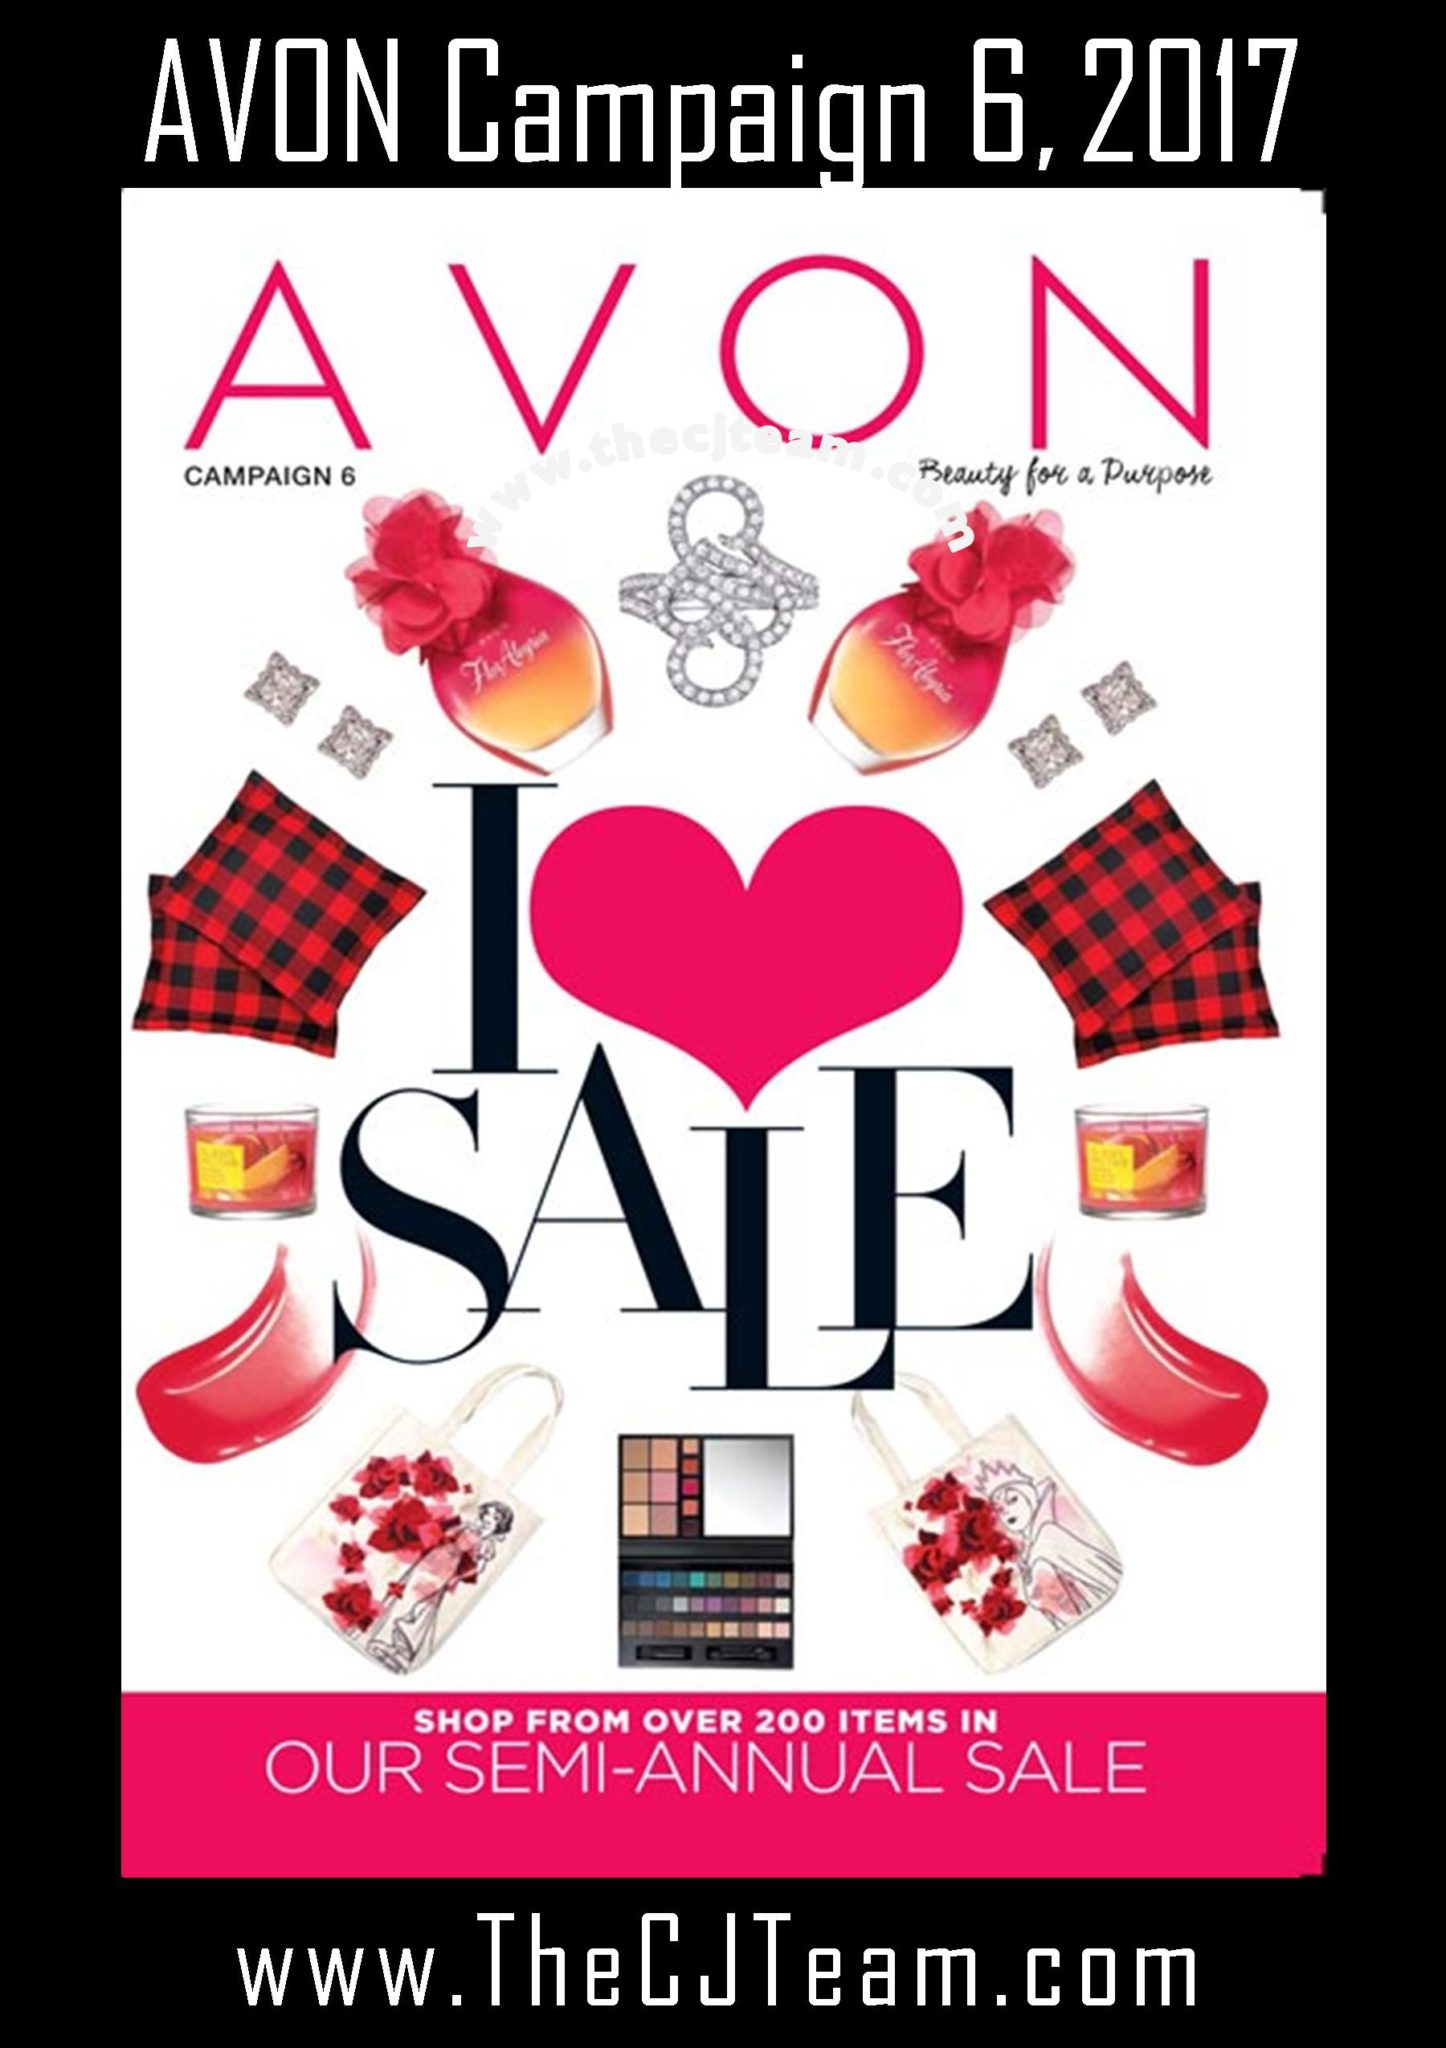 Avon Campaign 6, 2017 - More Than Makeup Online